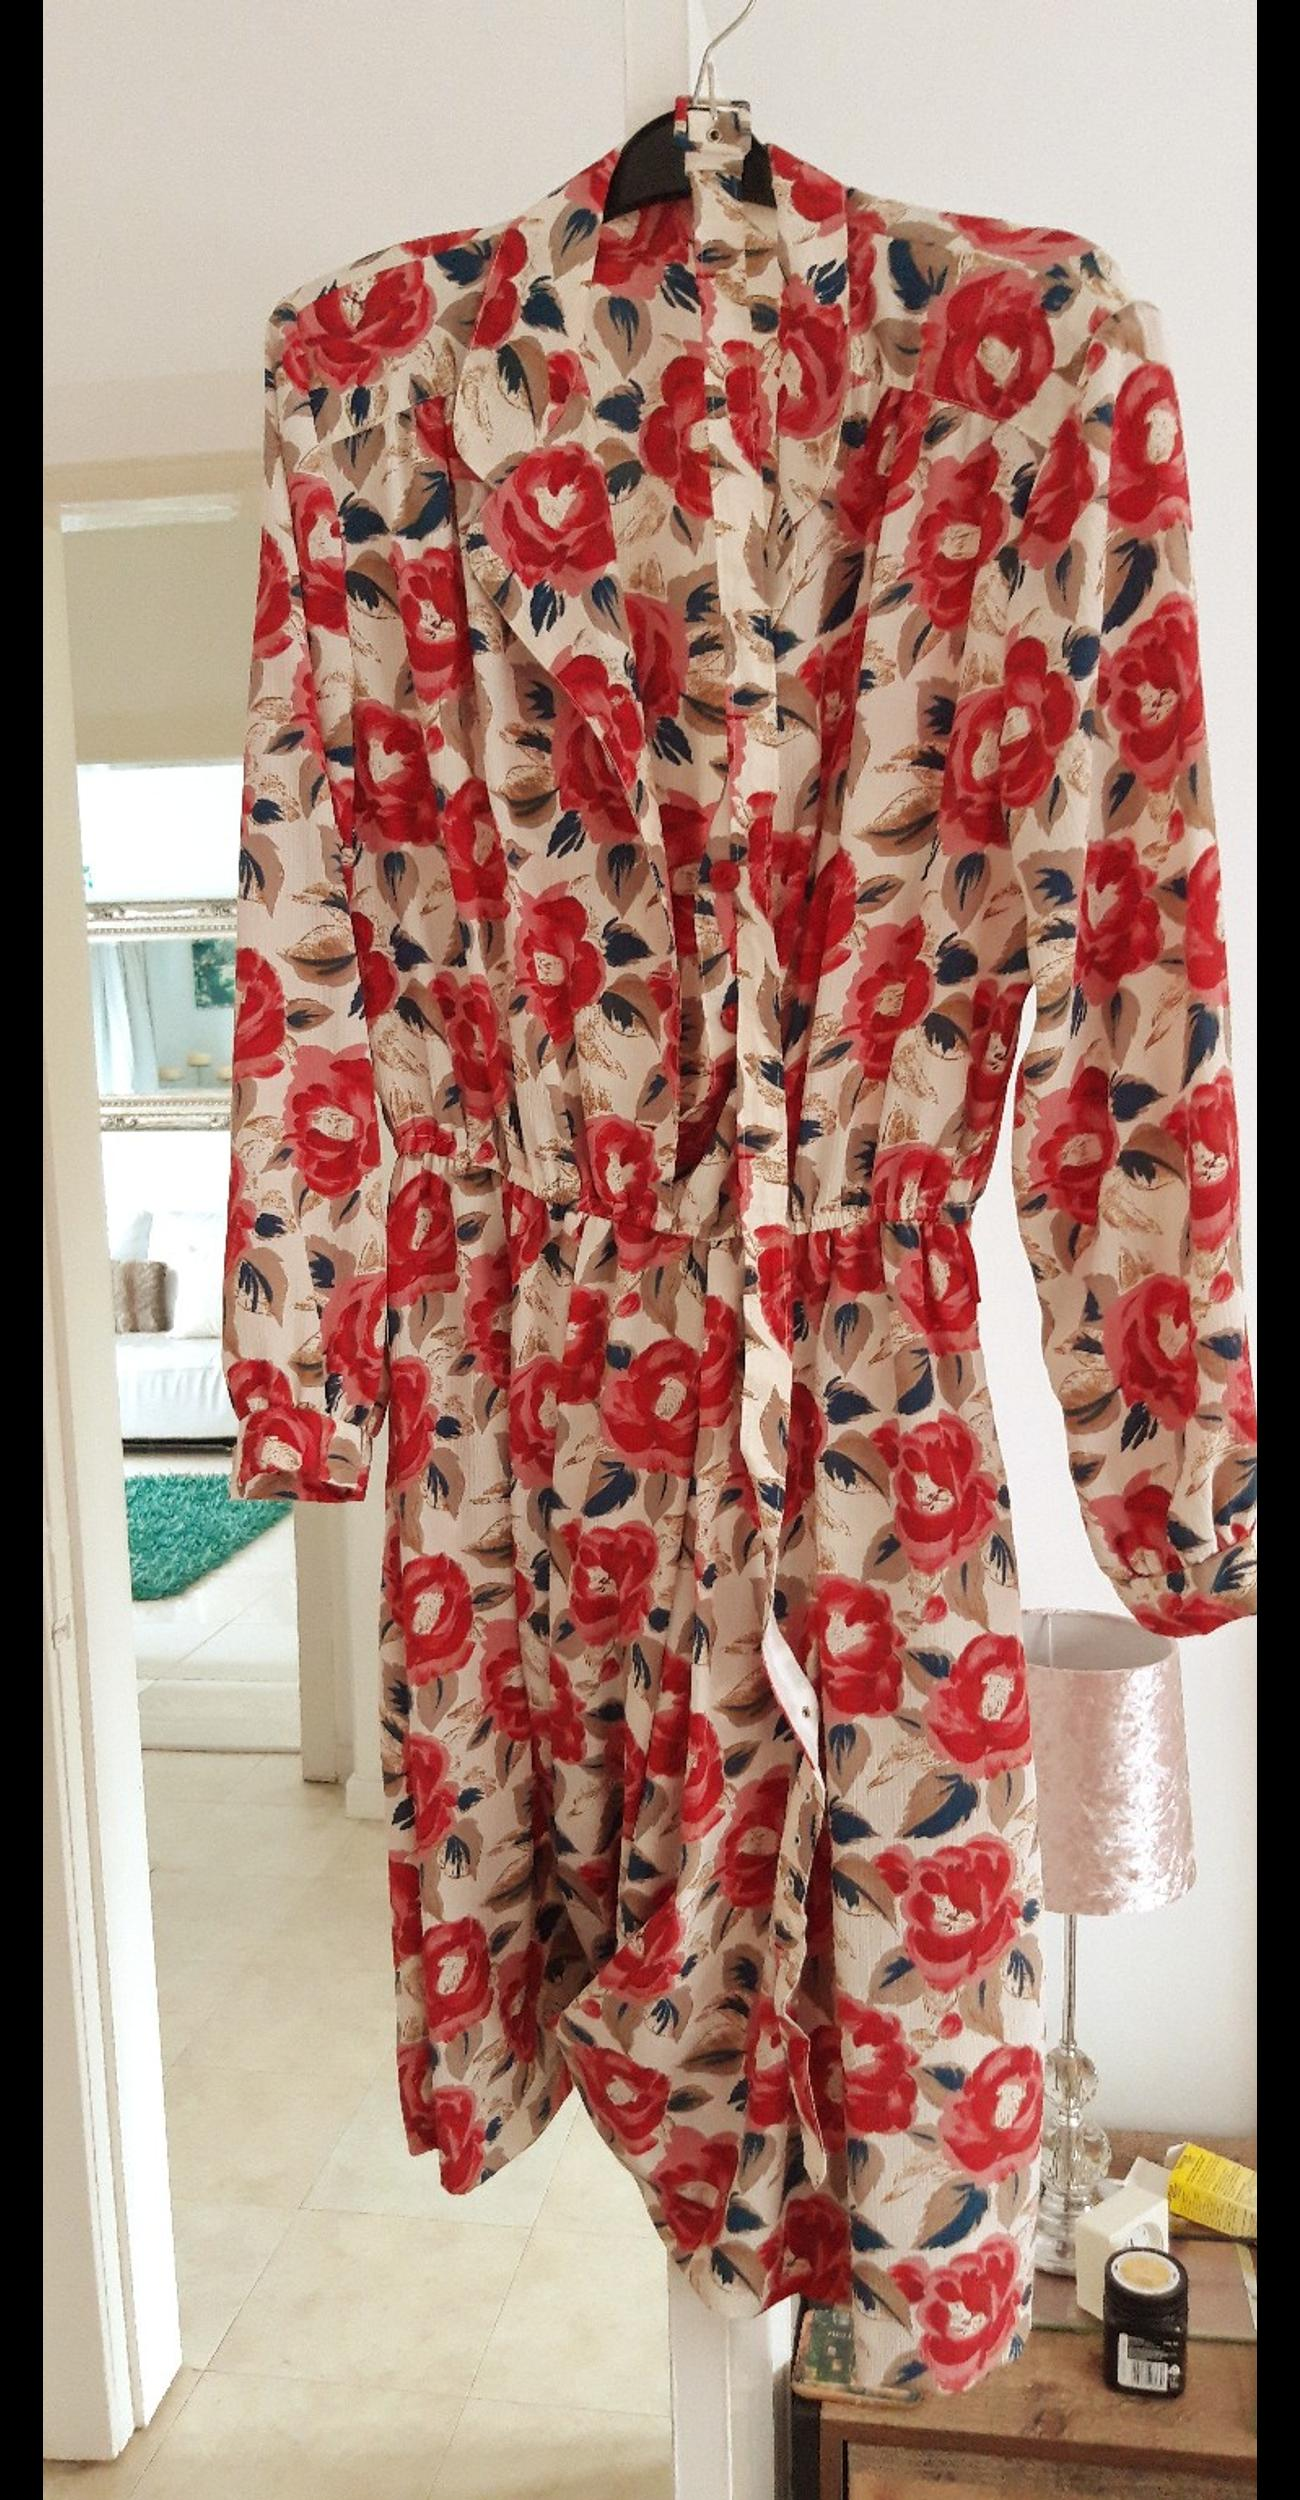 Wore this for a Vintage Fancy Dress. Size Medium dress. Perfect condition from a pet & smoke free home.